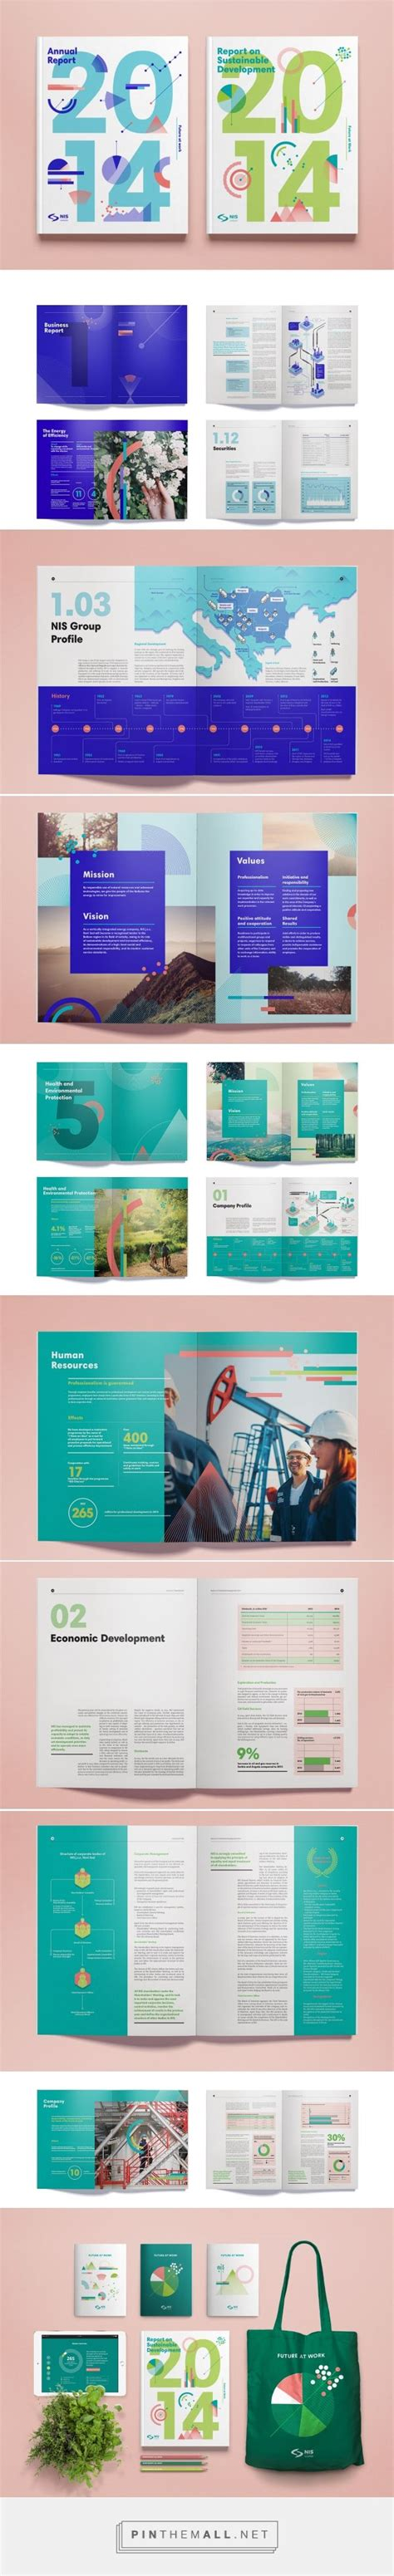 graphic design grid layout pdf nis annual report 2014 on behance education annual